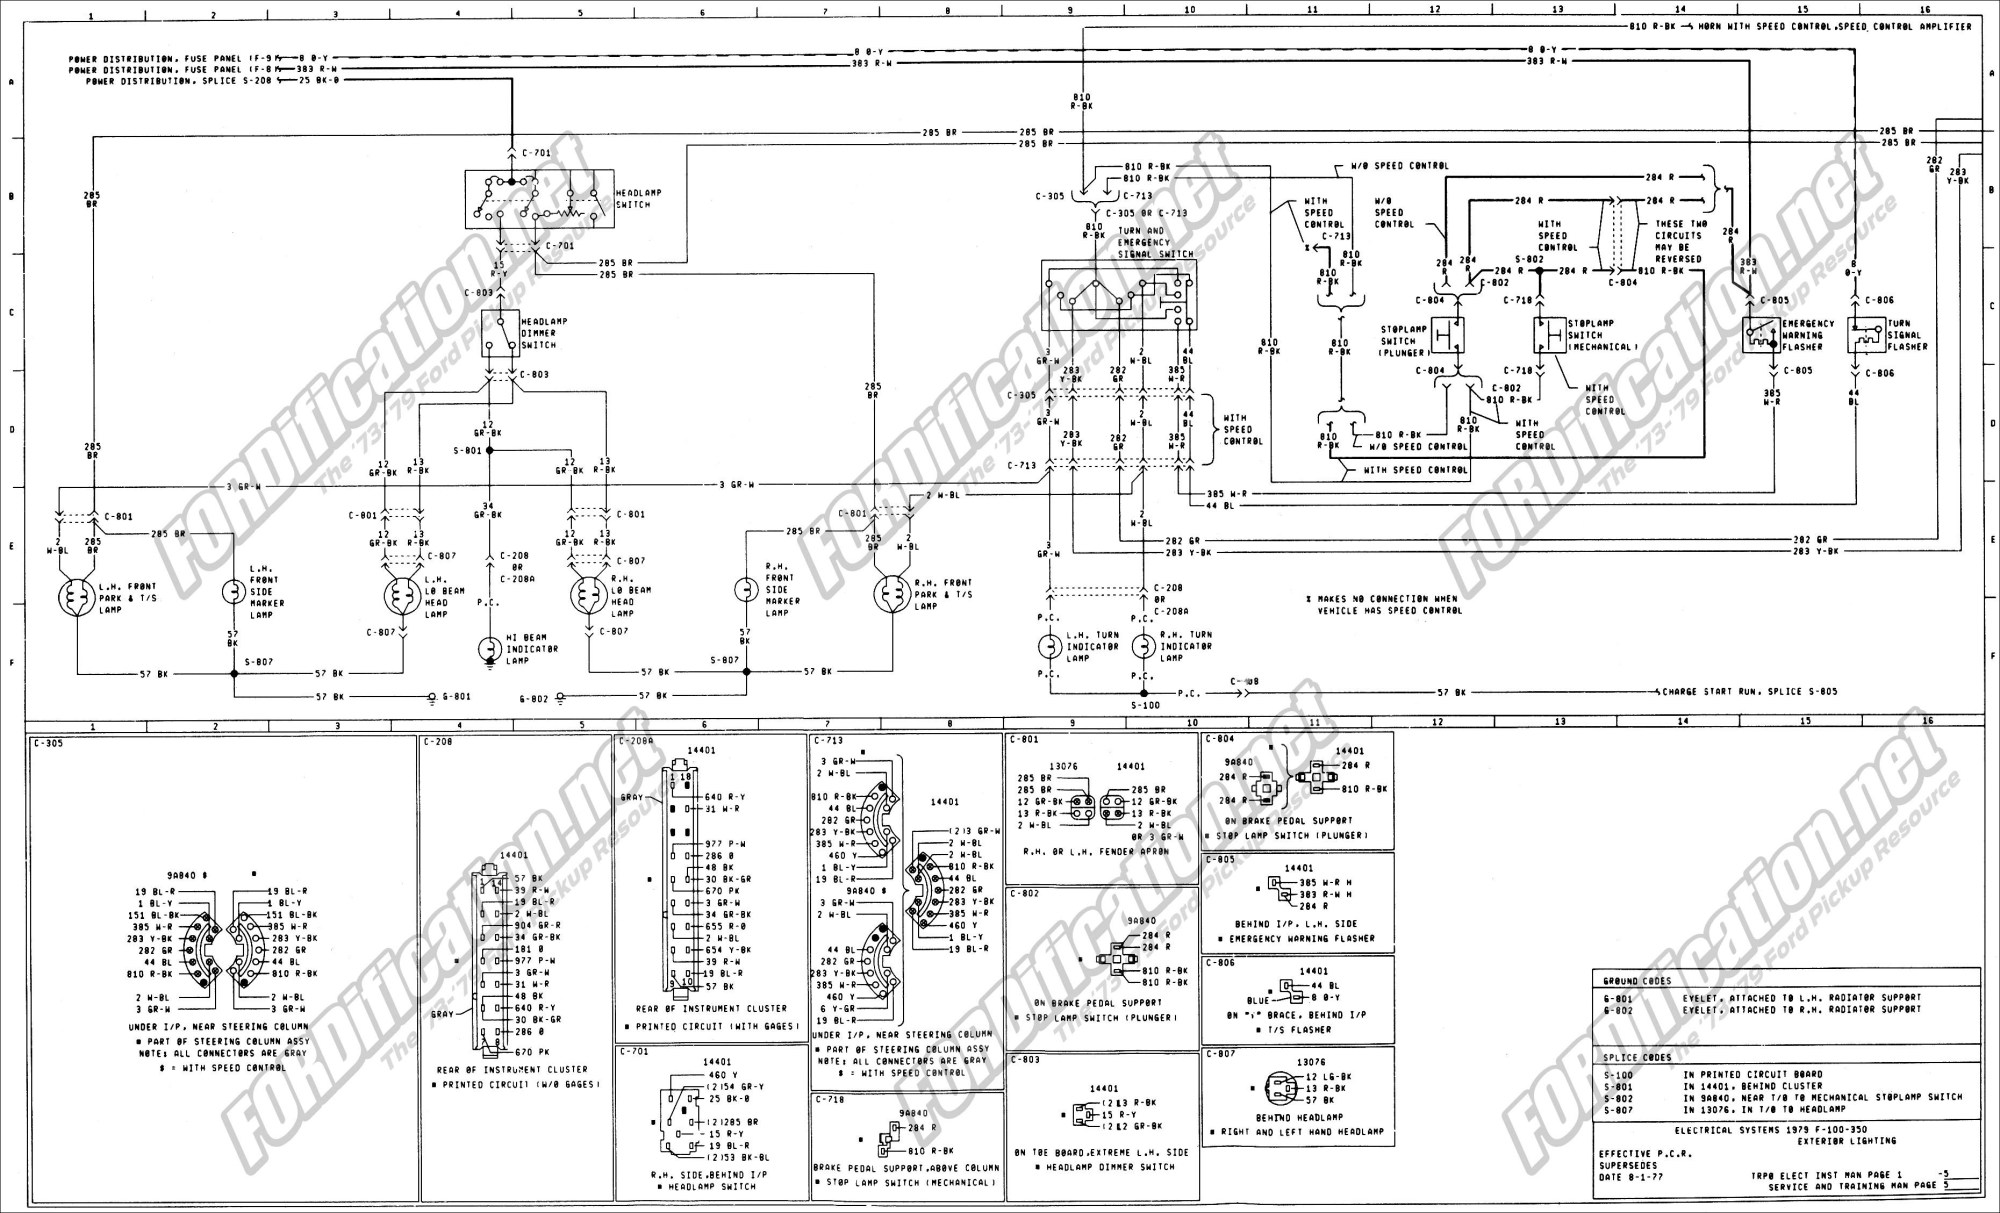 hight resolution of 1976 ford f150 wiring diagram wiring diagram blog 1977 ford f150 tail light wiring diagram 1977 ford f150 wiring diagram